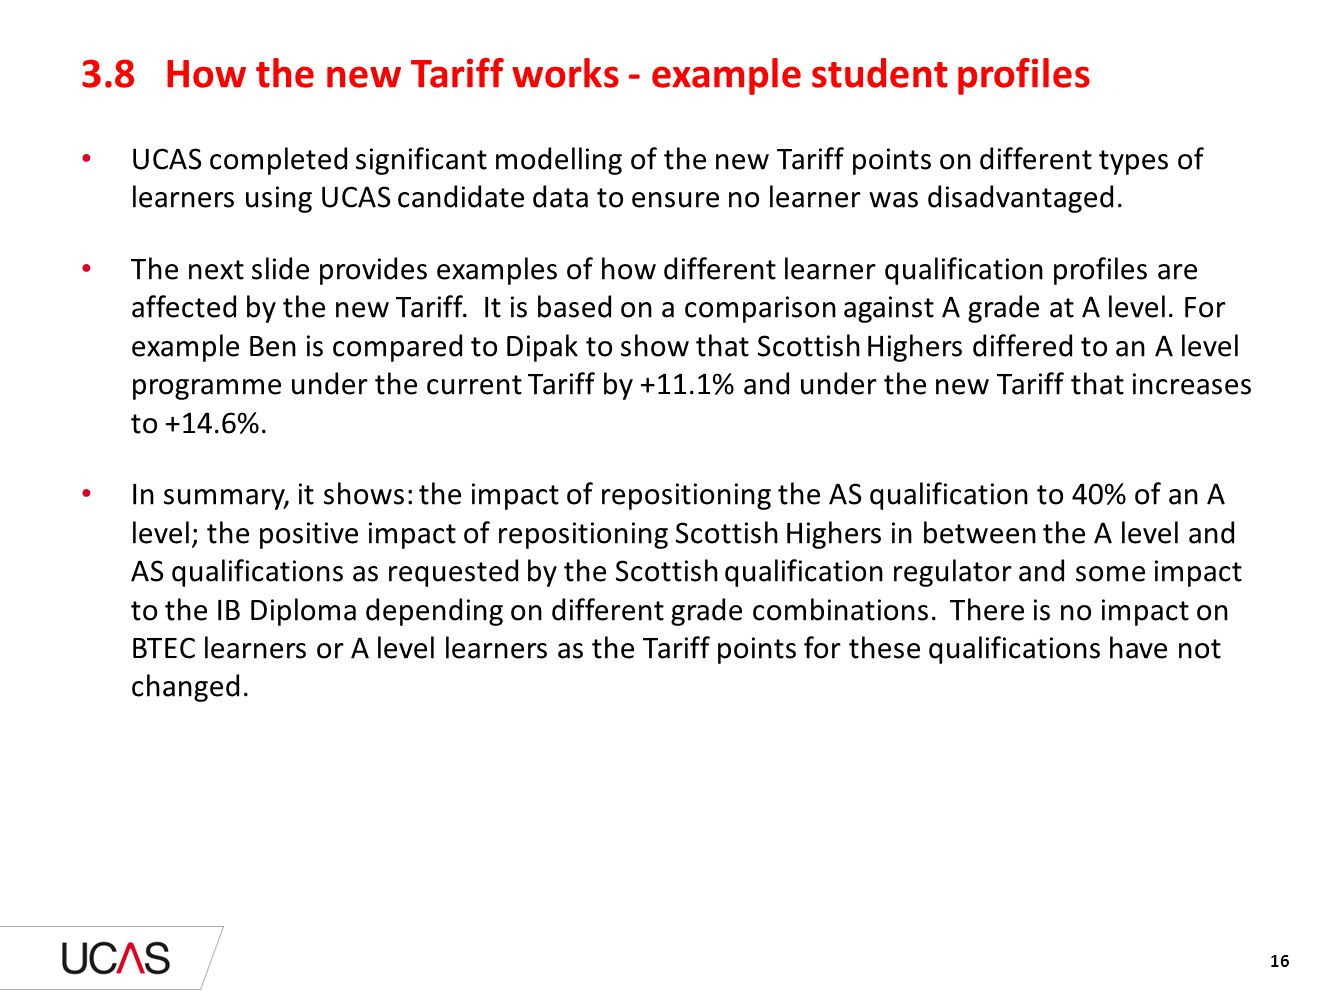 3.8 How the new Tariff works - example student profiles